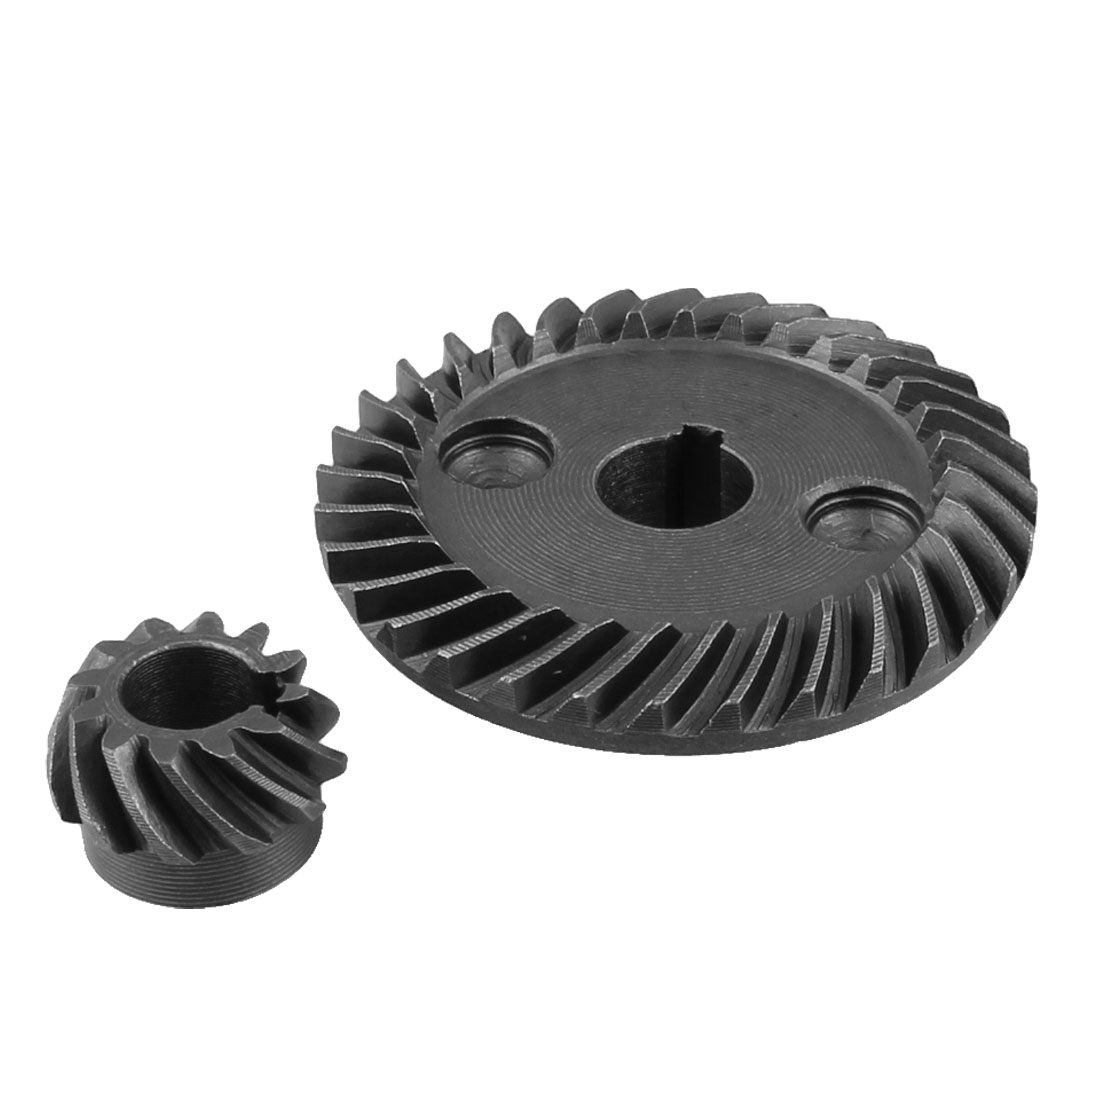 UXCELL Hot Selling Metal Spiral Bevel Gear Set Spiral Teeth Shaft Dia 10mm For Pinion Shaft Dia 8mm For Makita 9523 Angle Sander